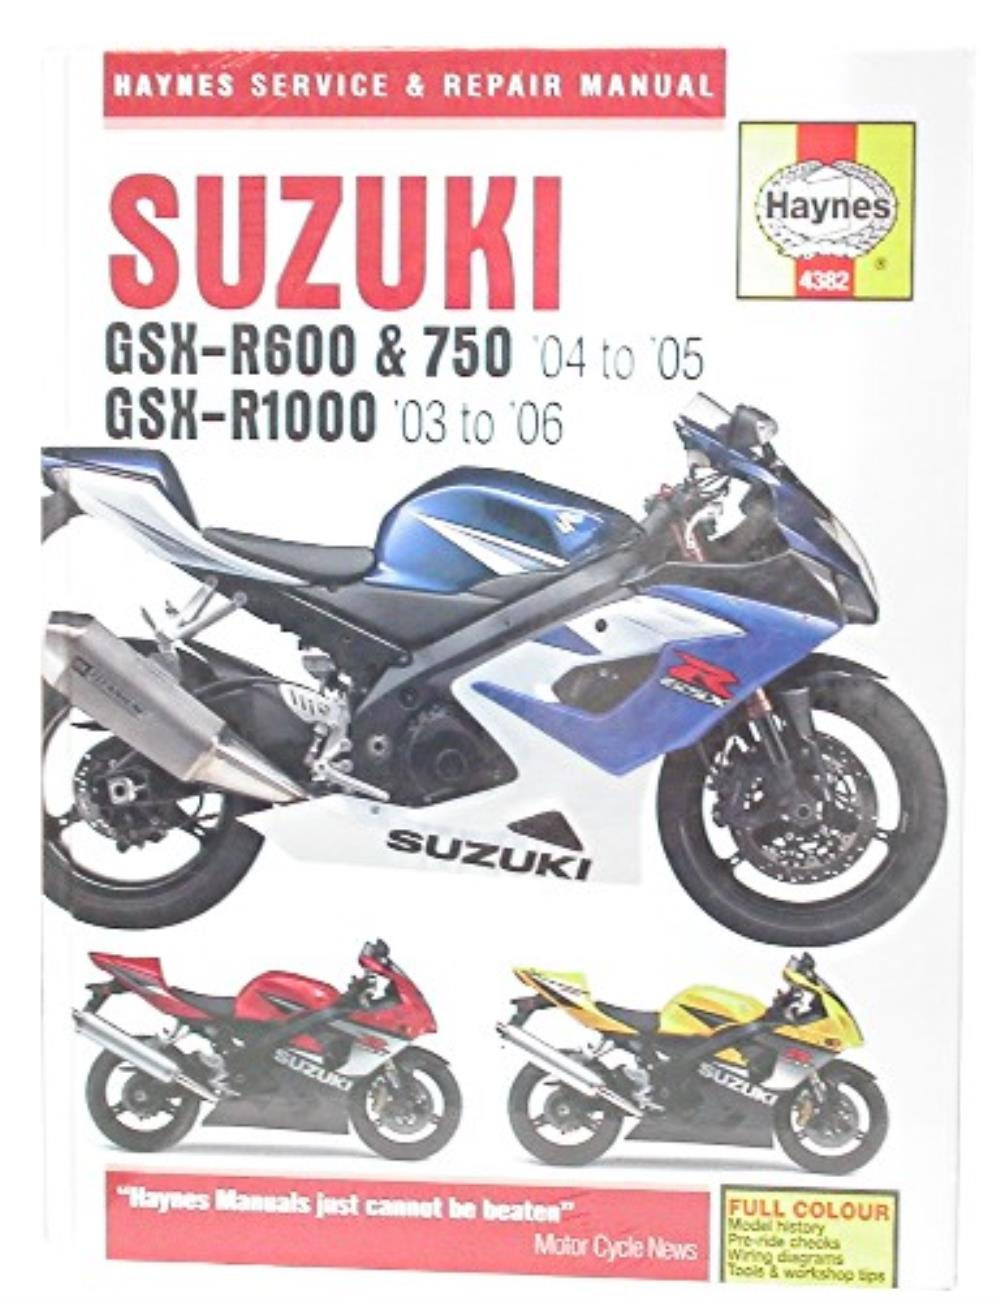 manual haynes for 2005 suzuki gsx r 1000 k5 ebay rh ebay co uk 2005 gsxr service manual pdf 2005 suzuki gsxr 750 service manual pdf